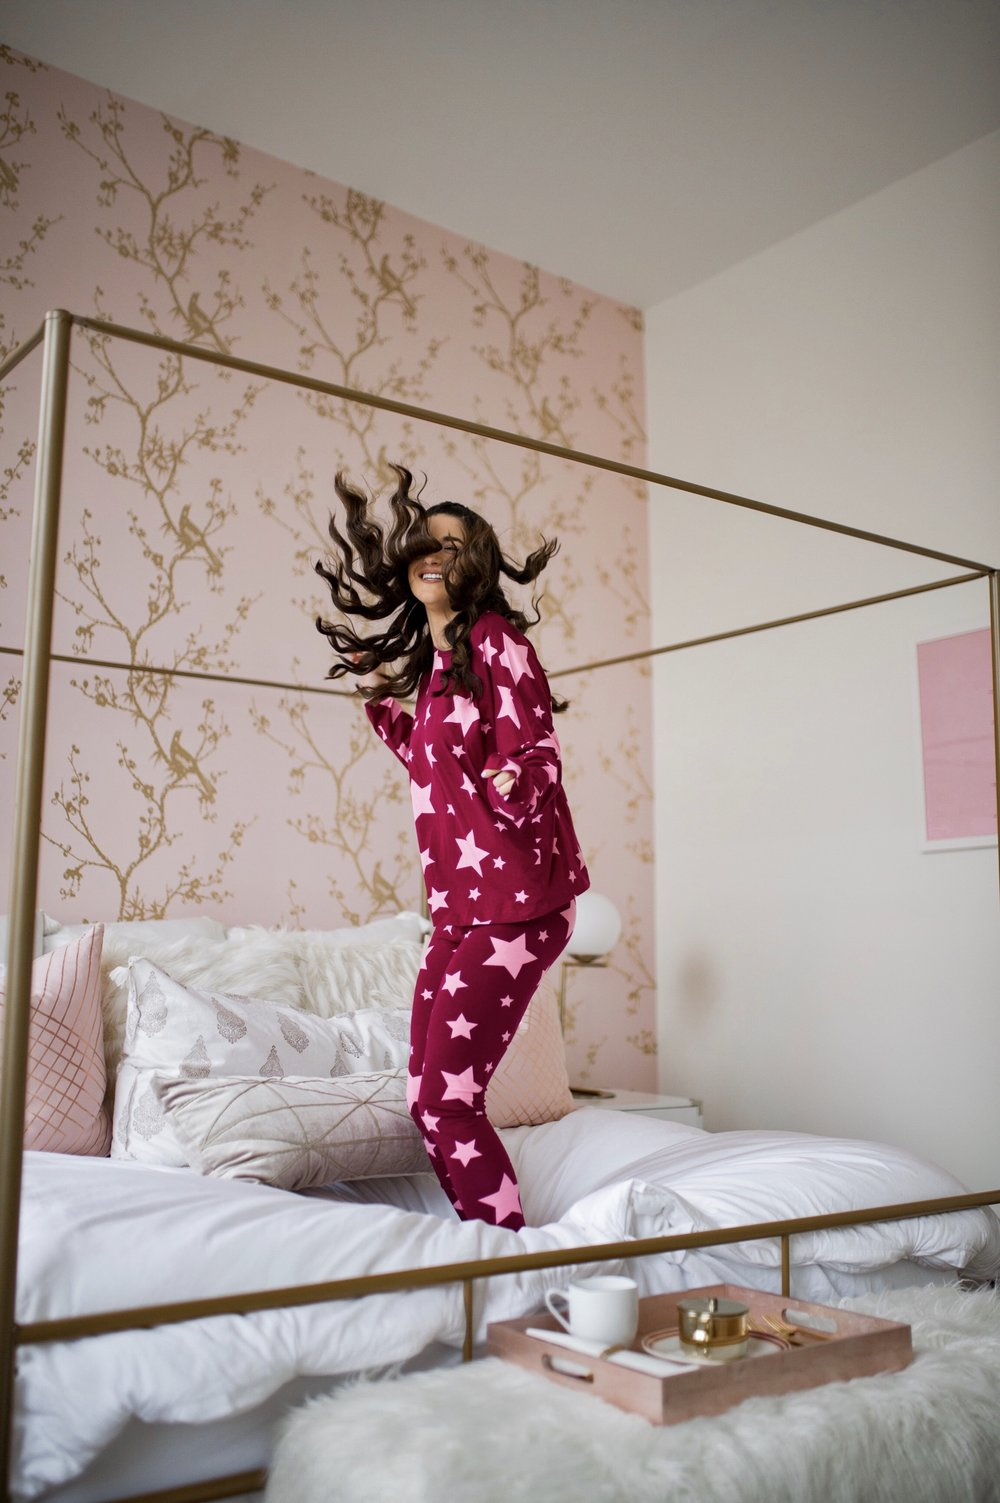 How I Became A Full Time Blogger Pink Star Pajamas Esther Santer Fashion Blog NYC Street Style Blogger Outfit OOTD Trendy Shopping ASOS Shopping Cute Pretty Hairstyle Laurel Creative New York City Penthouse Photoshoot Bedroom Wayfair Furniture Modern.jpg